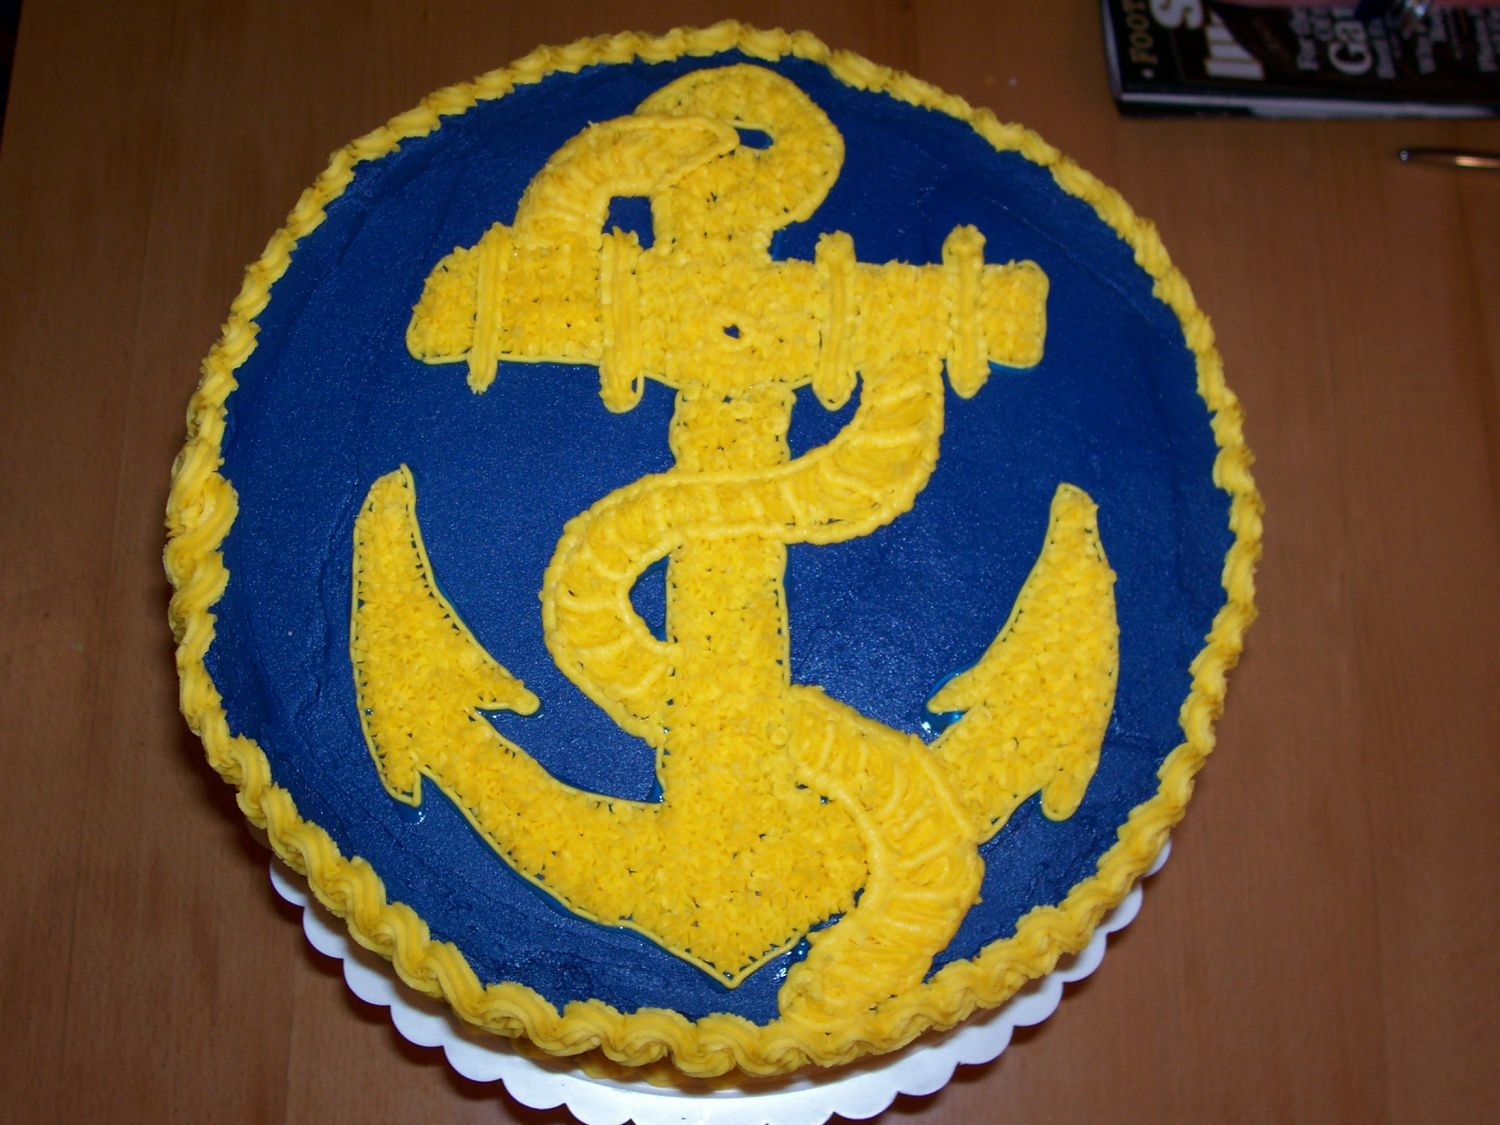 Go Navy!   Gold Navy anchor on Navy blue BC cake. Made for Army-Navy Football Game party. Used piping gel transfer technique from Course I